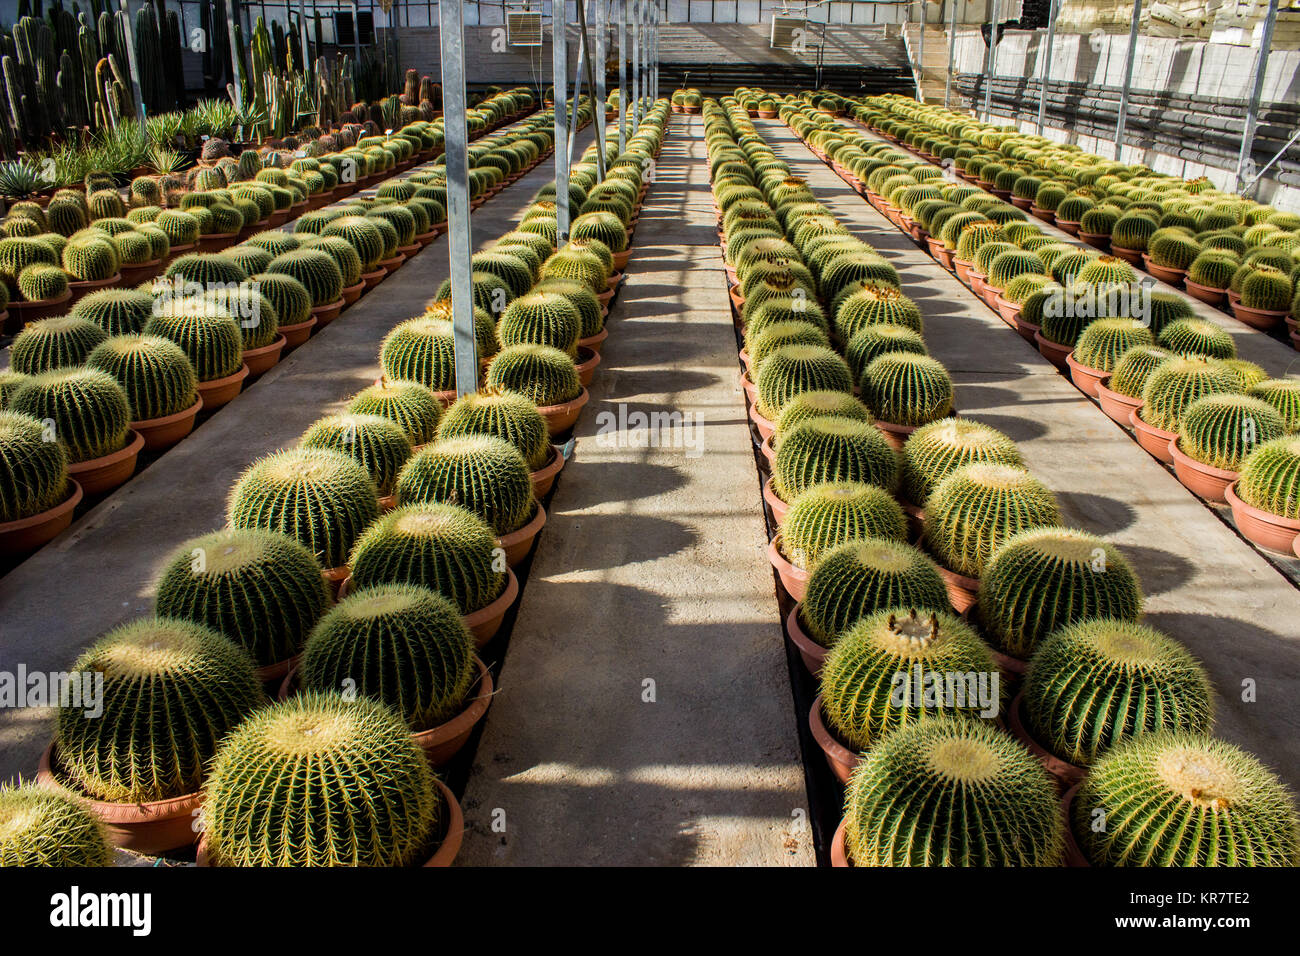 Cactus Nursery Stock Photos & Cactus Nursery Stock Images - Alamy